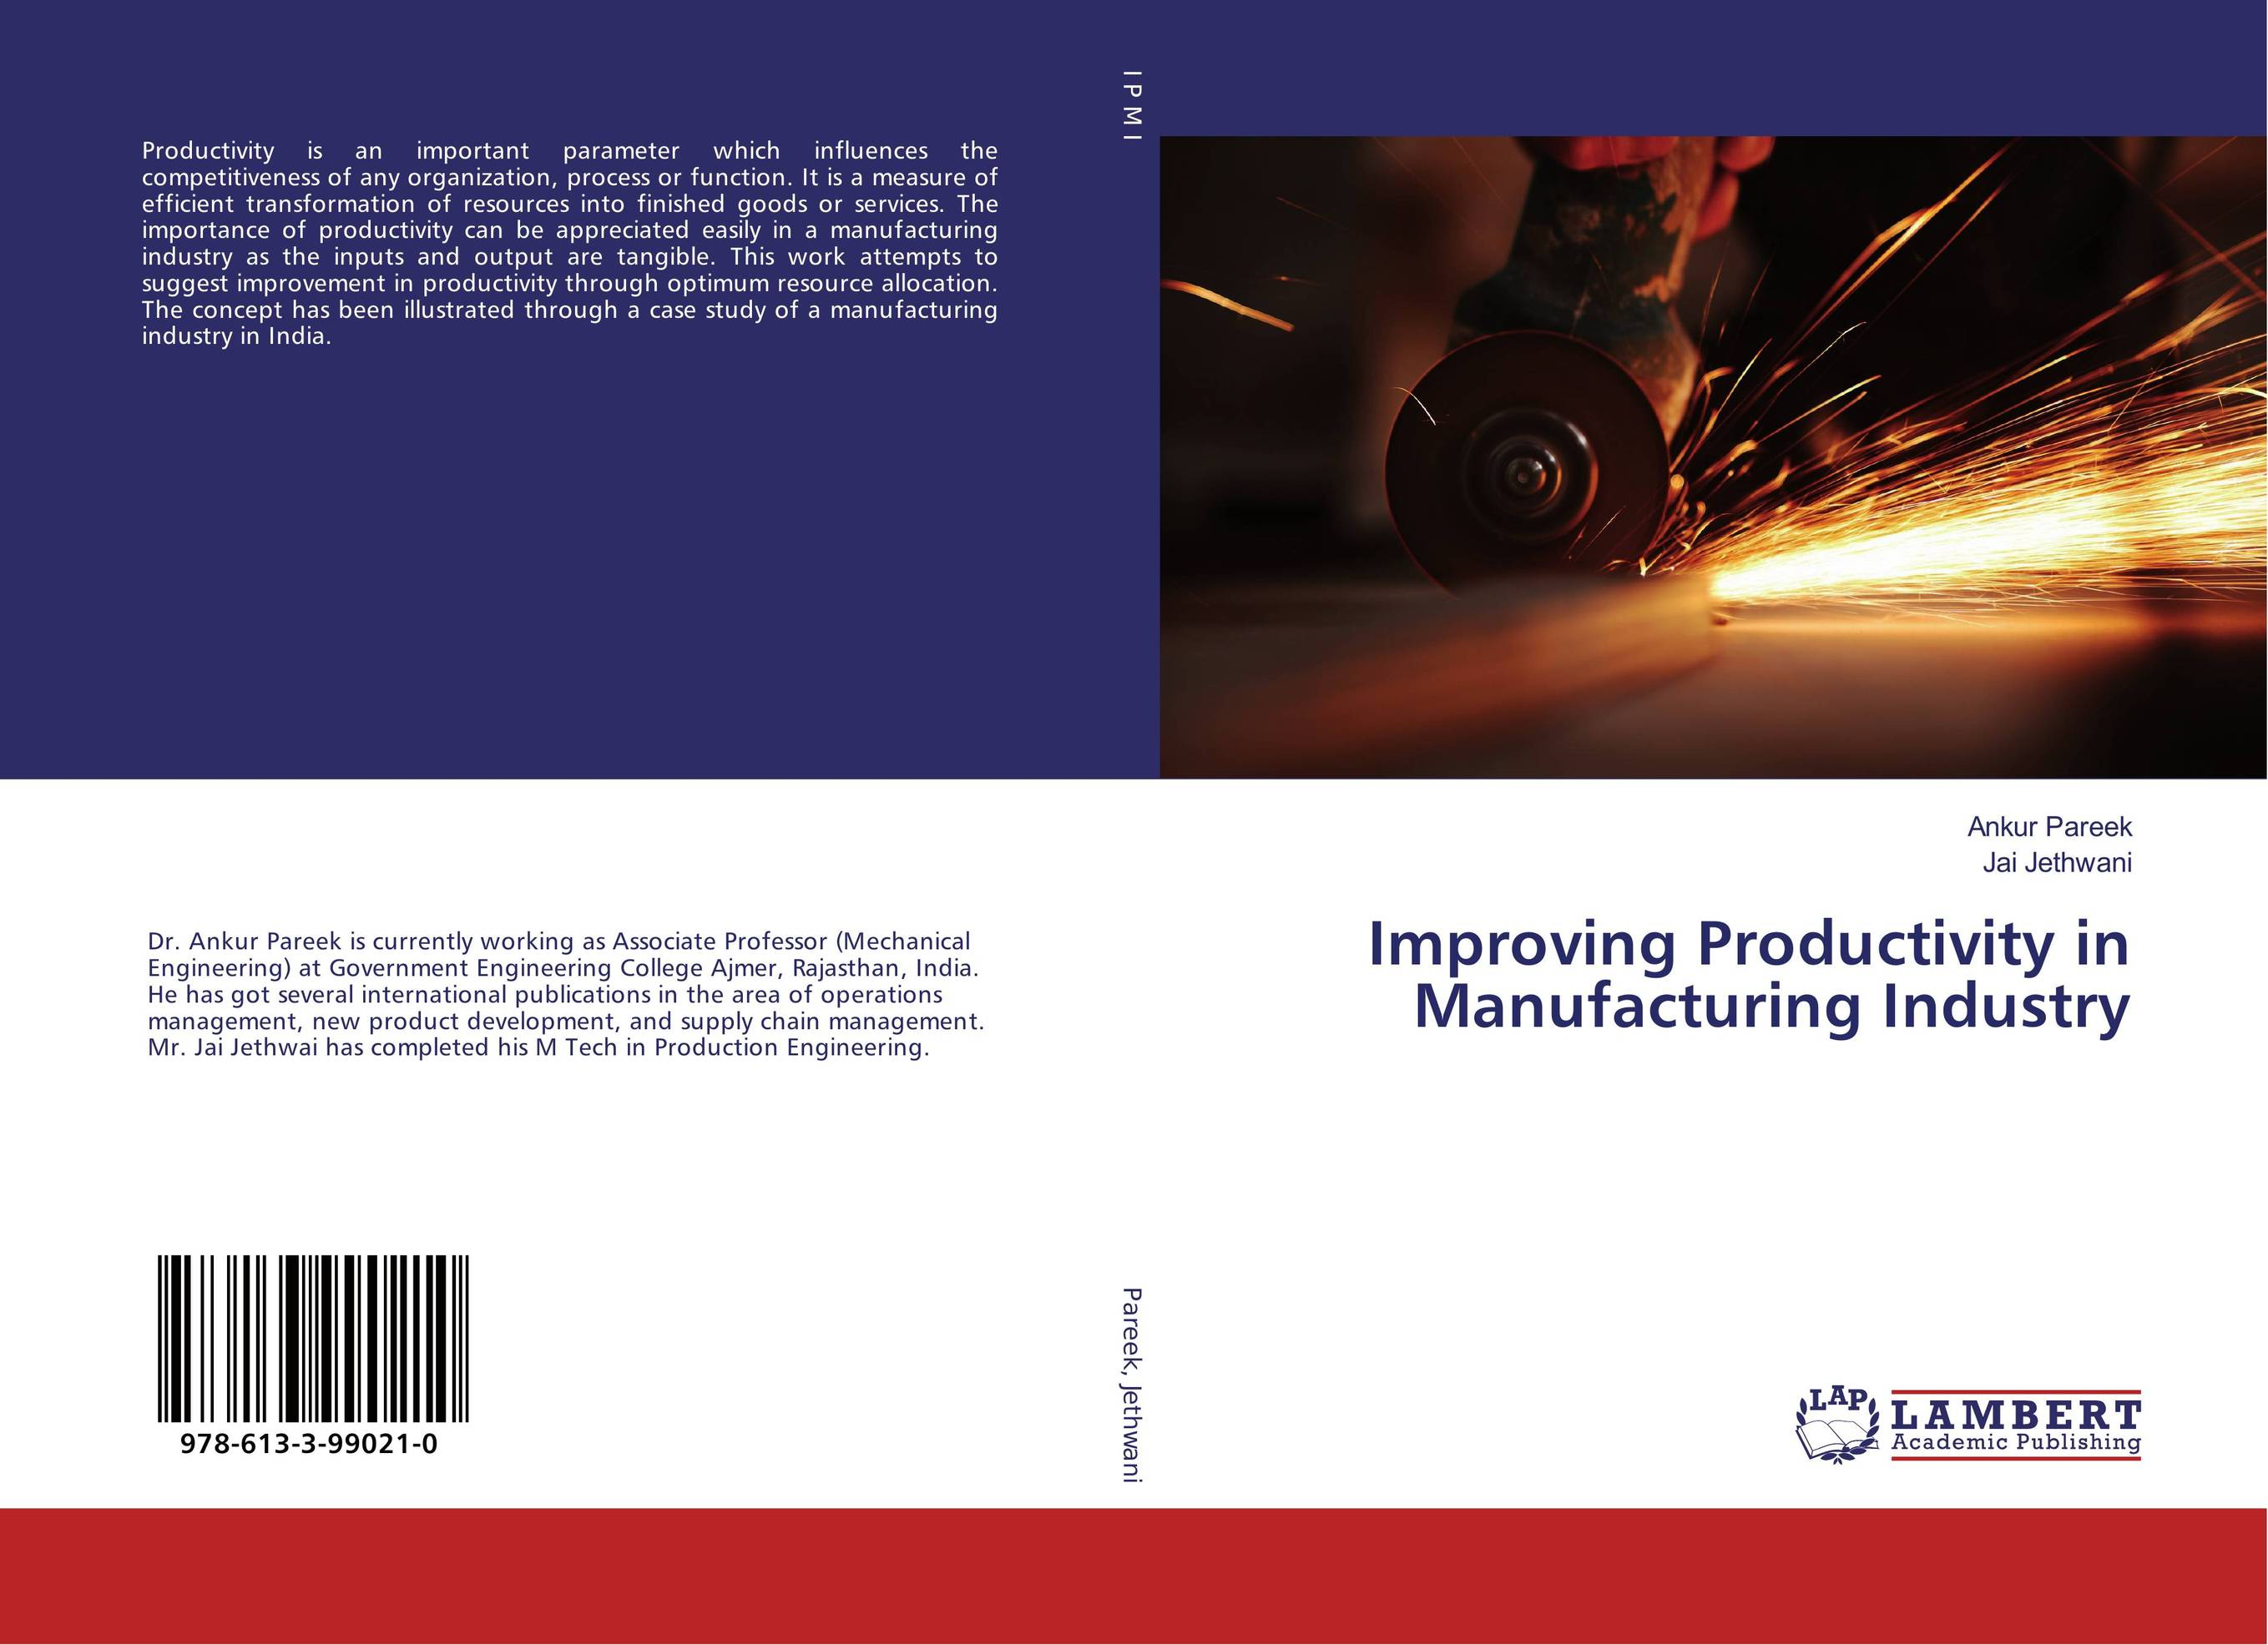 effects of improving productivity in lost foam industry essay Melissa carter has assisted me in evaluating metal filling and solidification of lost foam, bonded sand and open cavity molds melissa is very competent in using flow3d software to evaluate these.